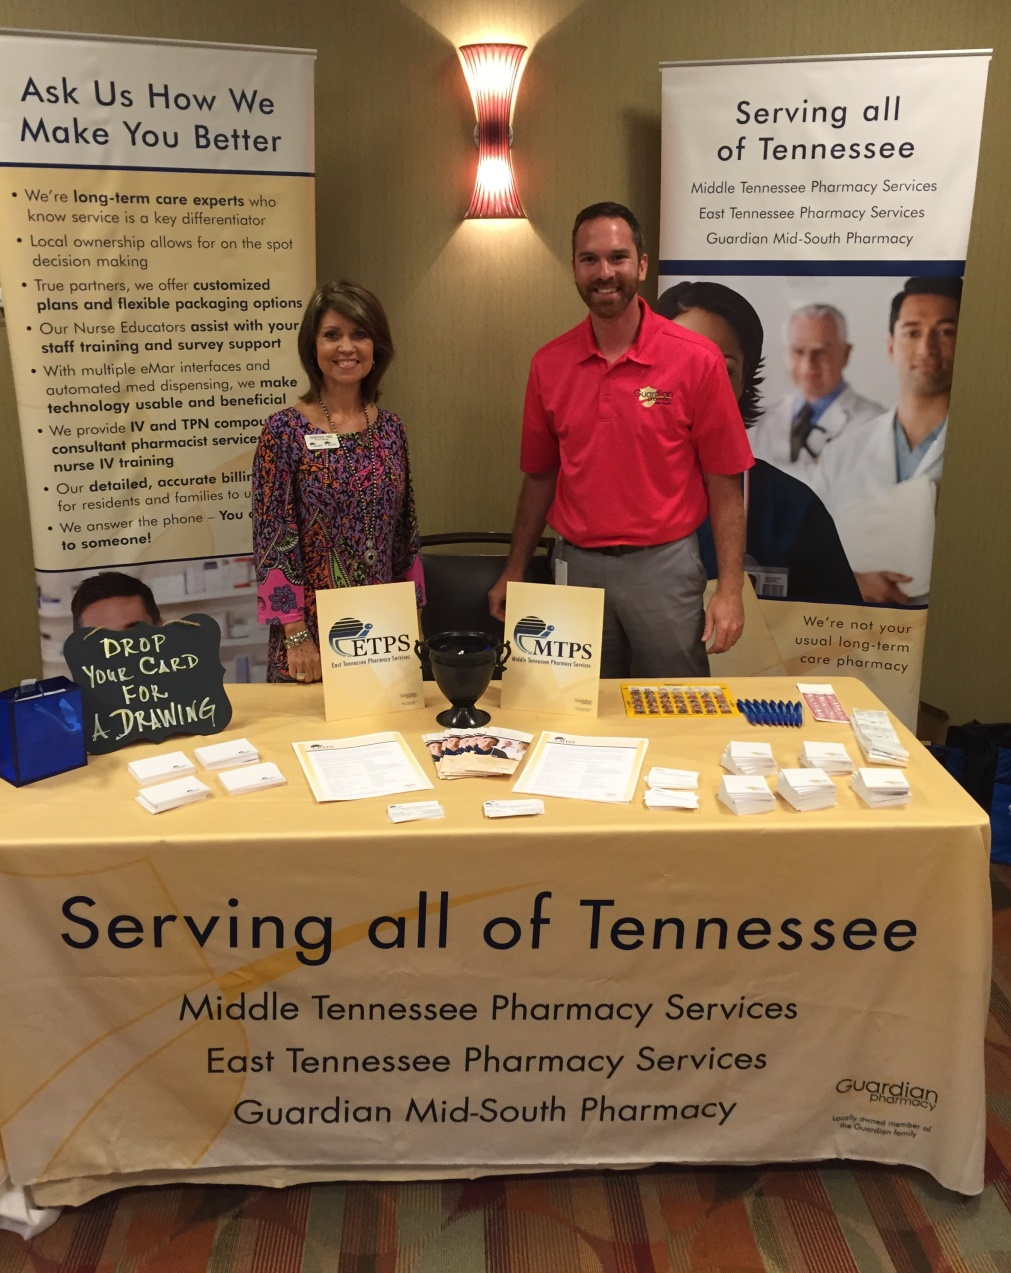 Sherry Nix, sales and account manager at MTPS and ETPS, and Ben Clark, sales and marketing manager at Guardian Pharmacy Mid-South, at the Tennessee Alliance for Children and Families 12th Annual Education and Leadership Conference.